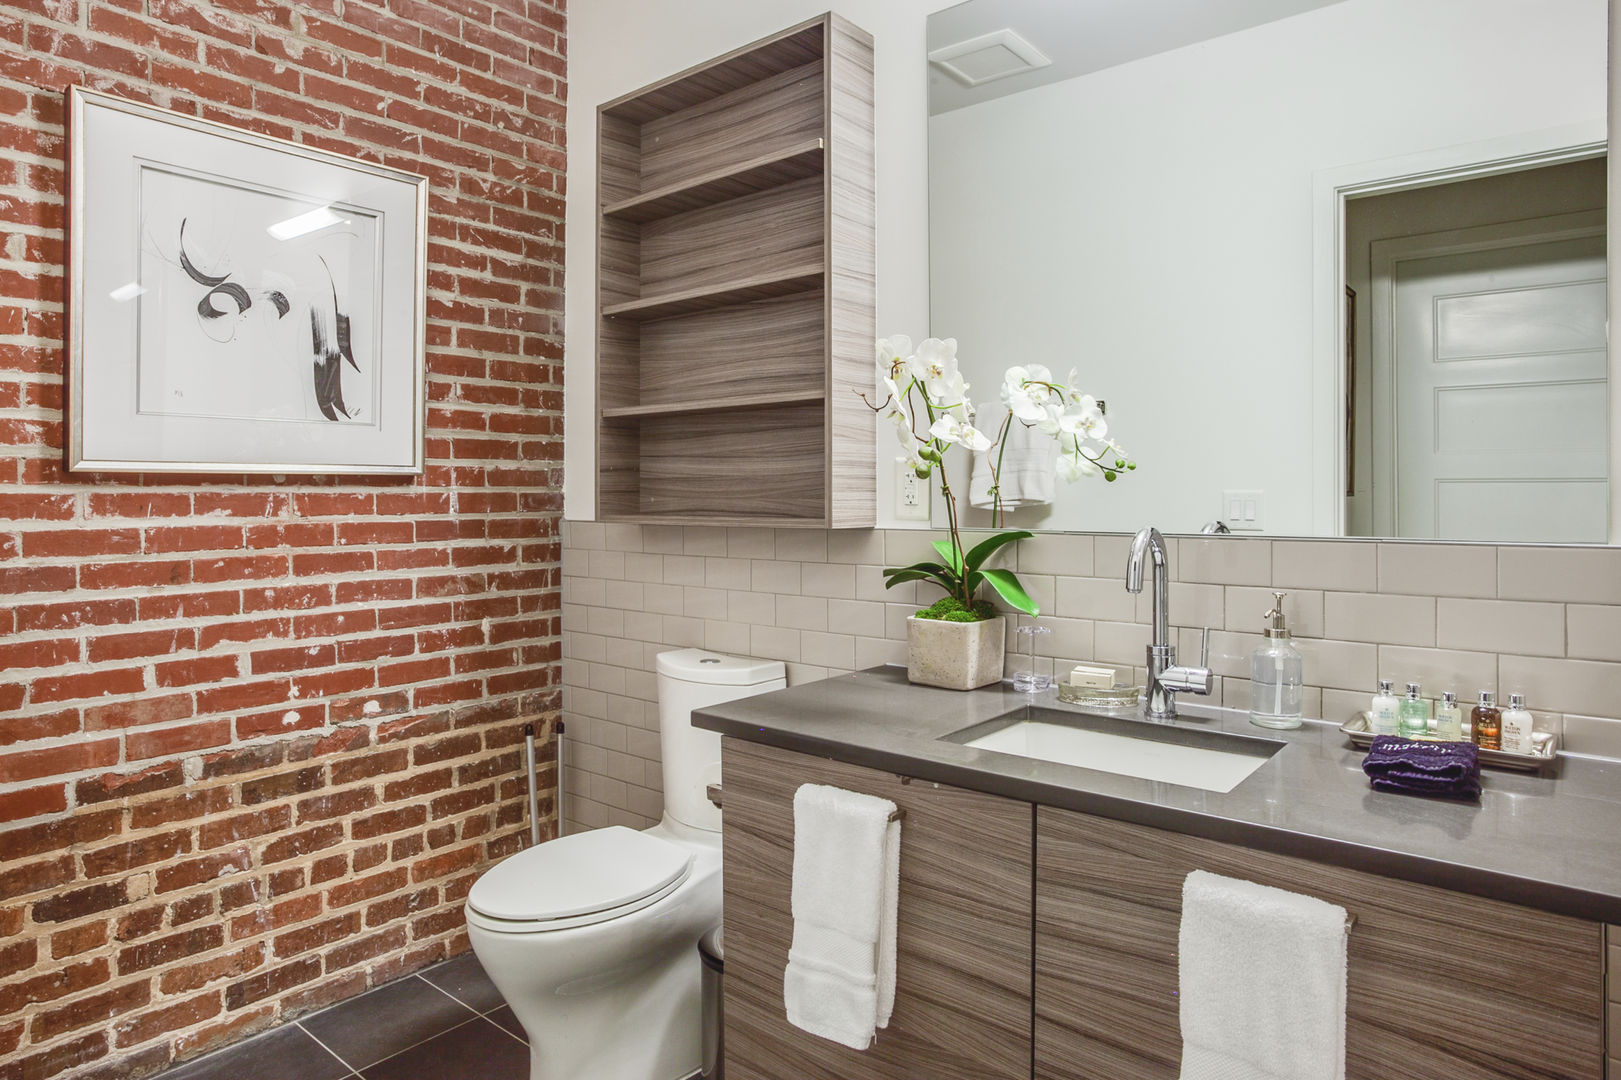 Bathroom with Brick Wall in our Ponce City Market Apartment